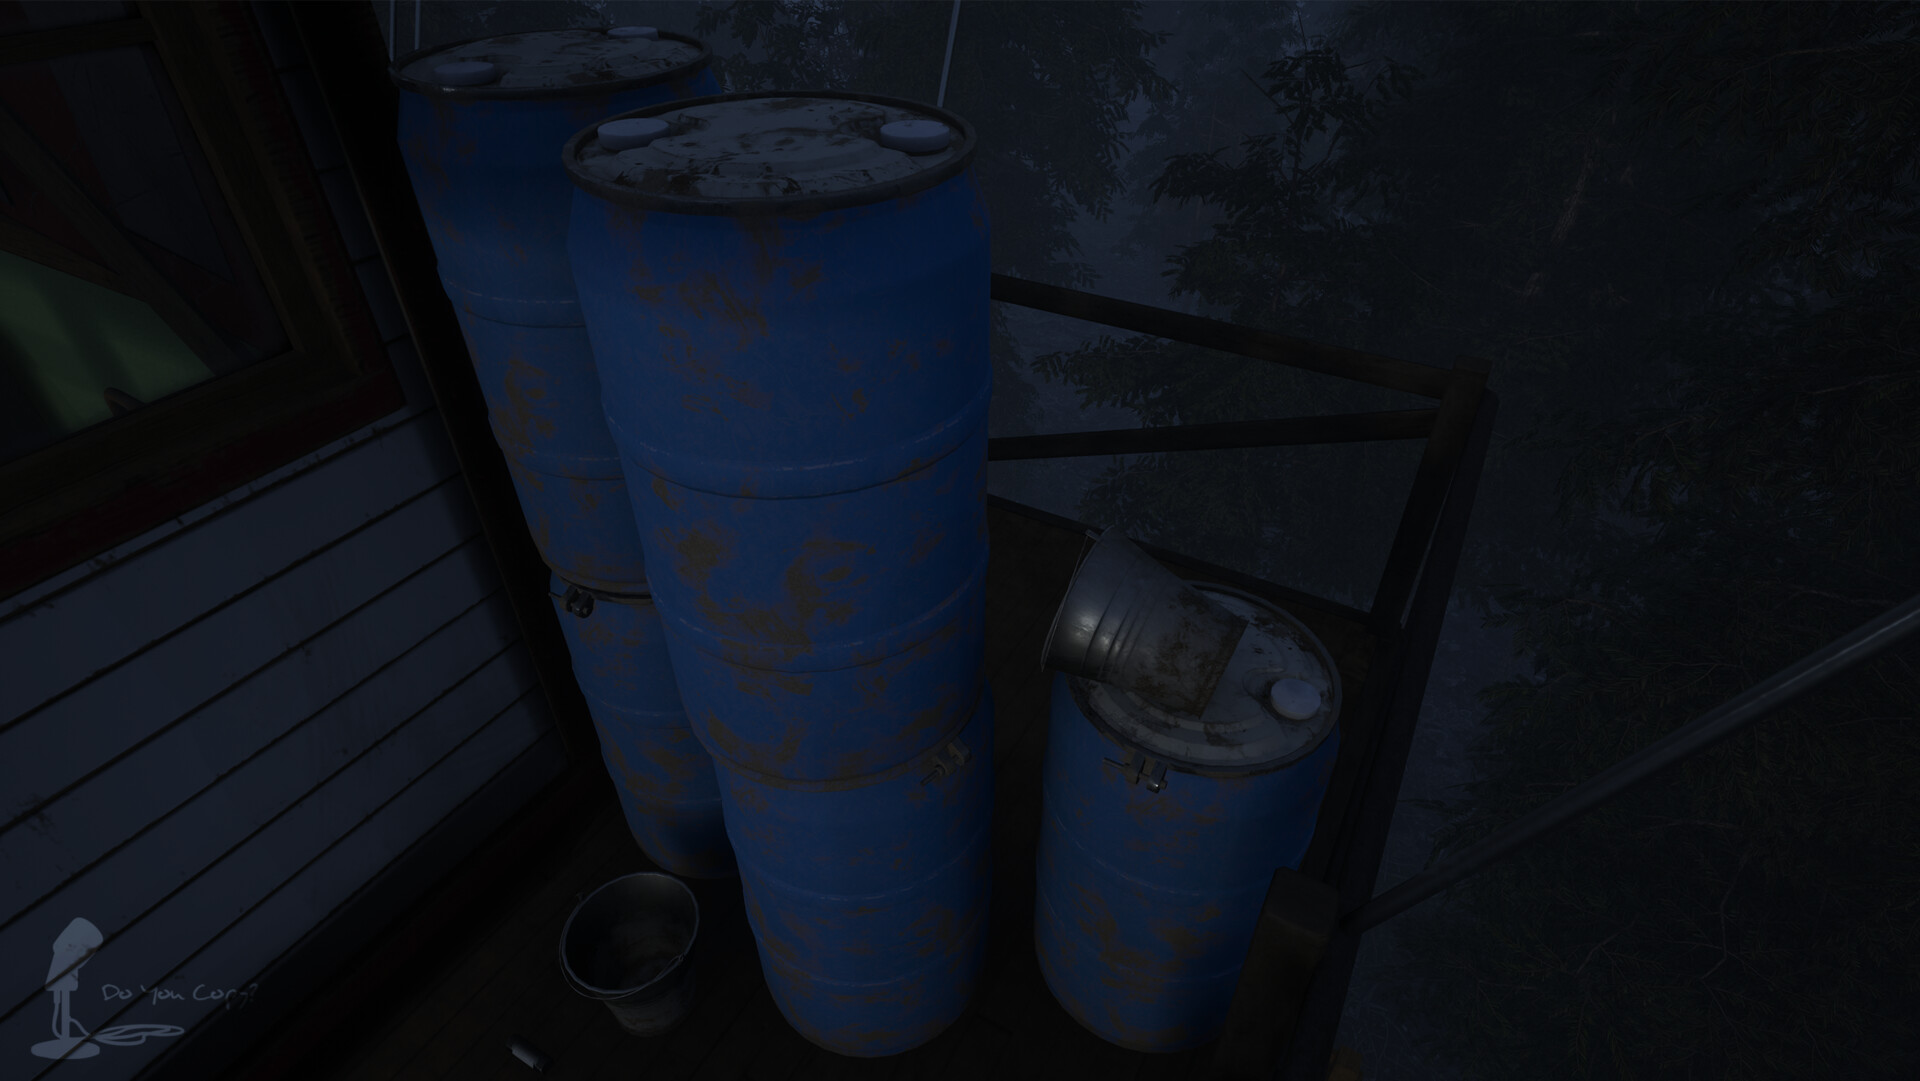 55 Gallon Drum - Rendered In Engine